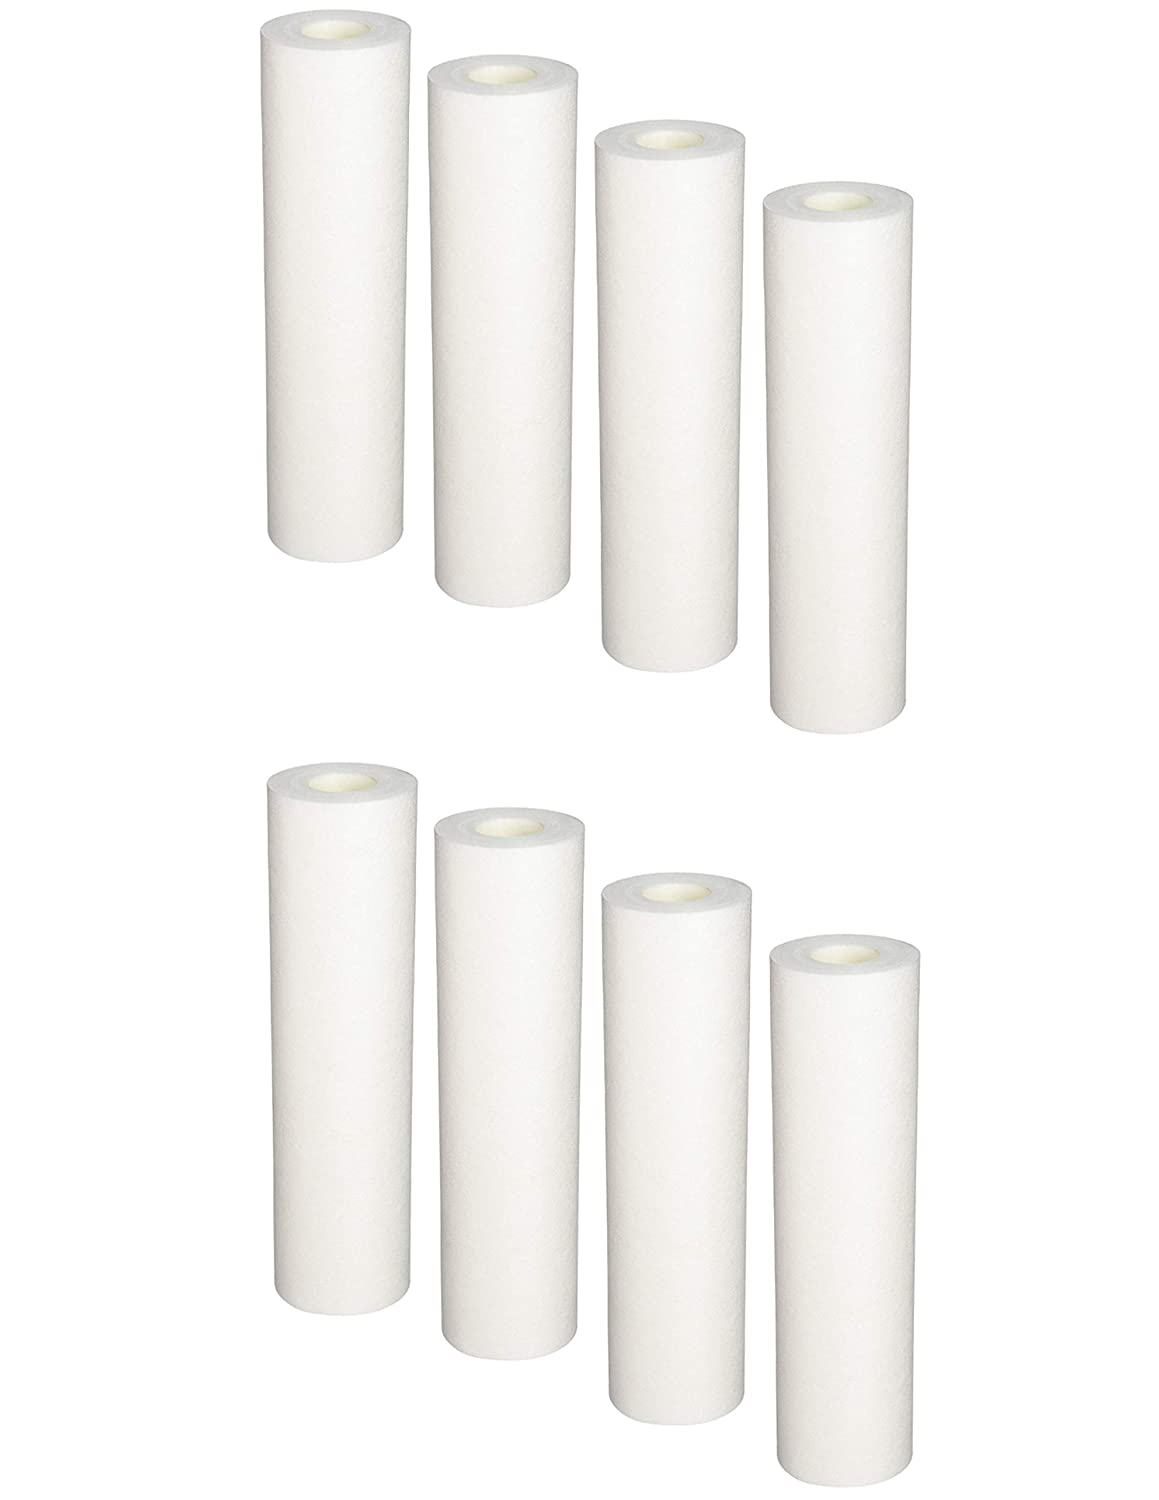 Compatible with 8-Pack Replacement GE GXWH04F Polypropylene Sediment Filter - Universal 10-inch 5-Micron Cartridge for GE HOUSEHOLD PRE-FILTRATION SYSTEM